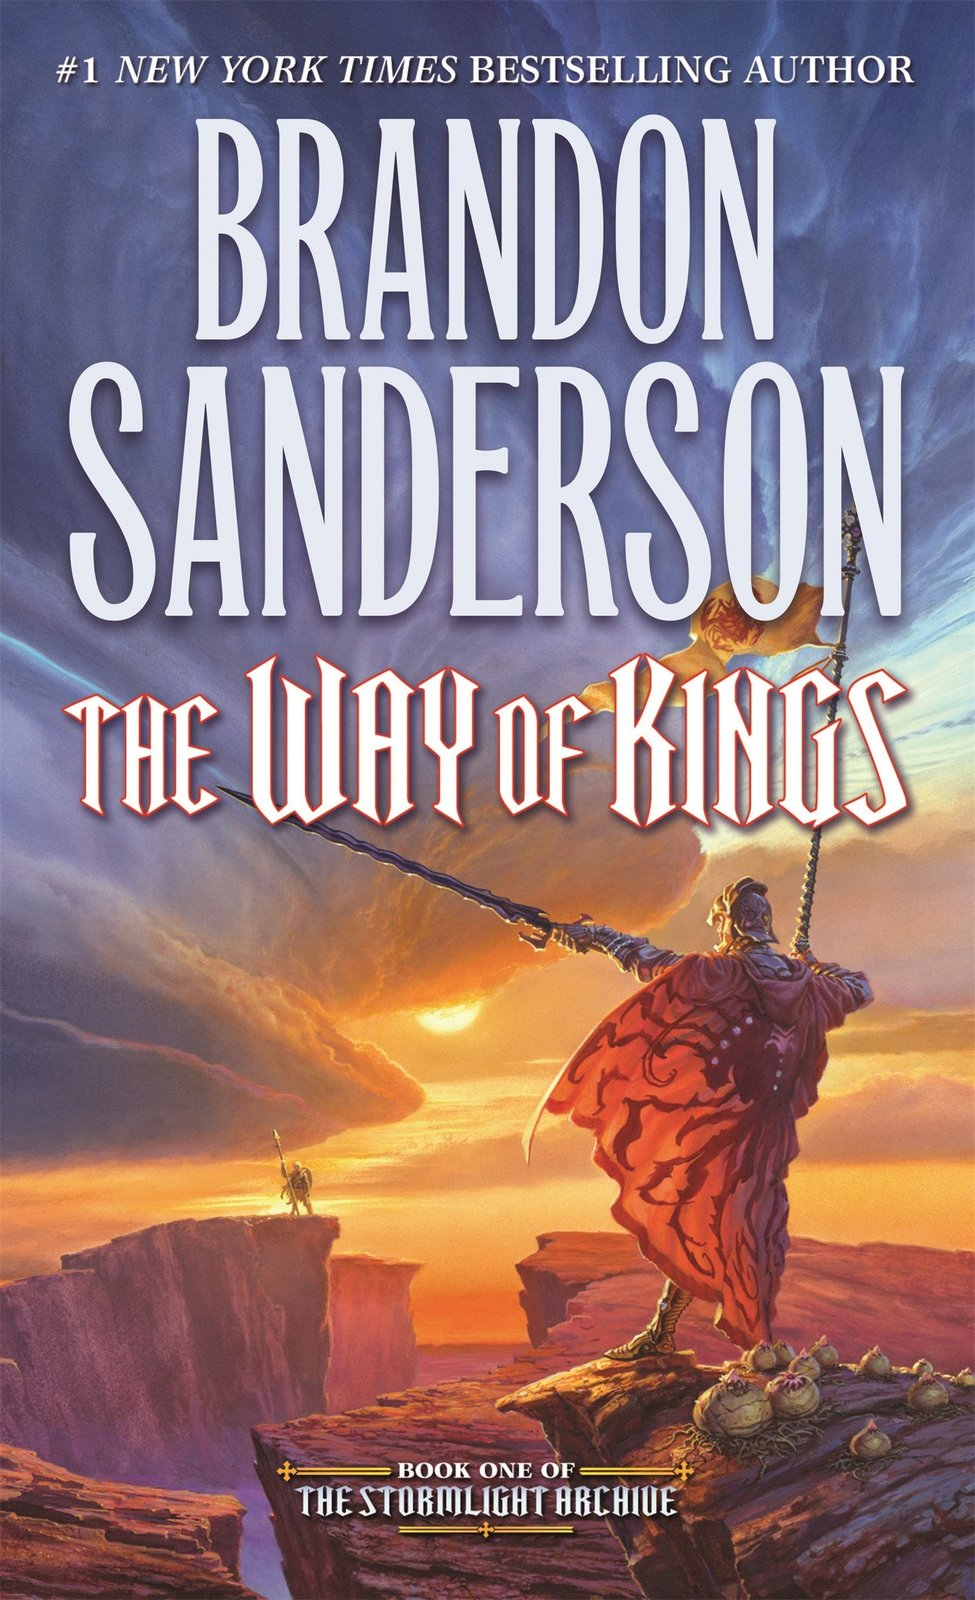 The Way of Kings (The Stormlight Archive #1) (US Ed) by Brandon Sanderson image